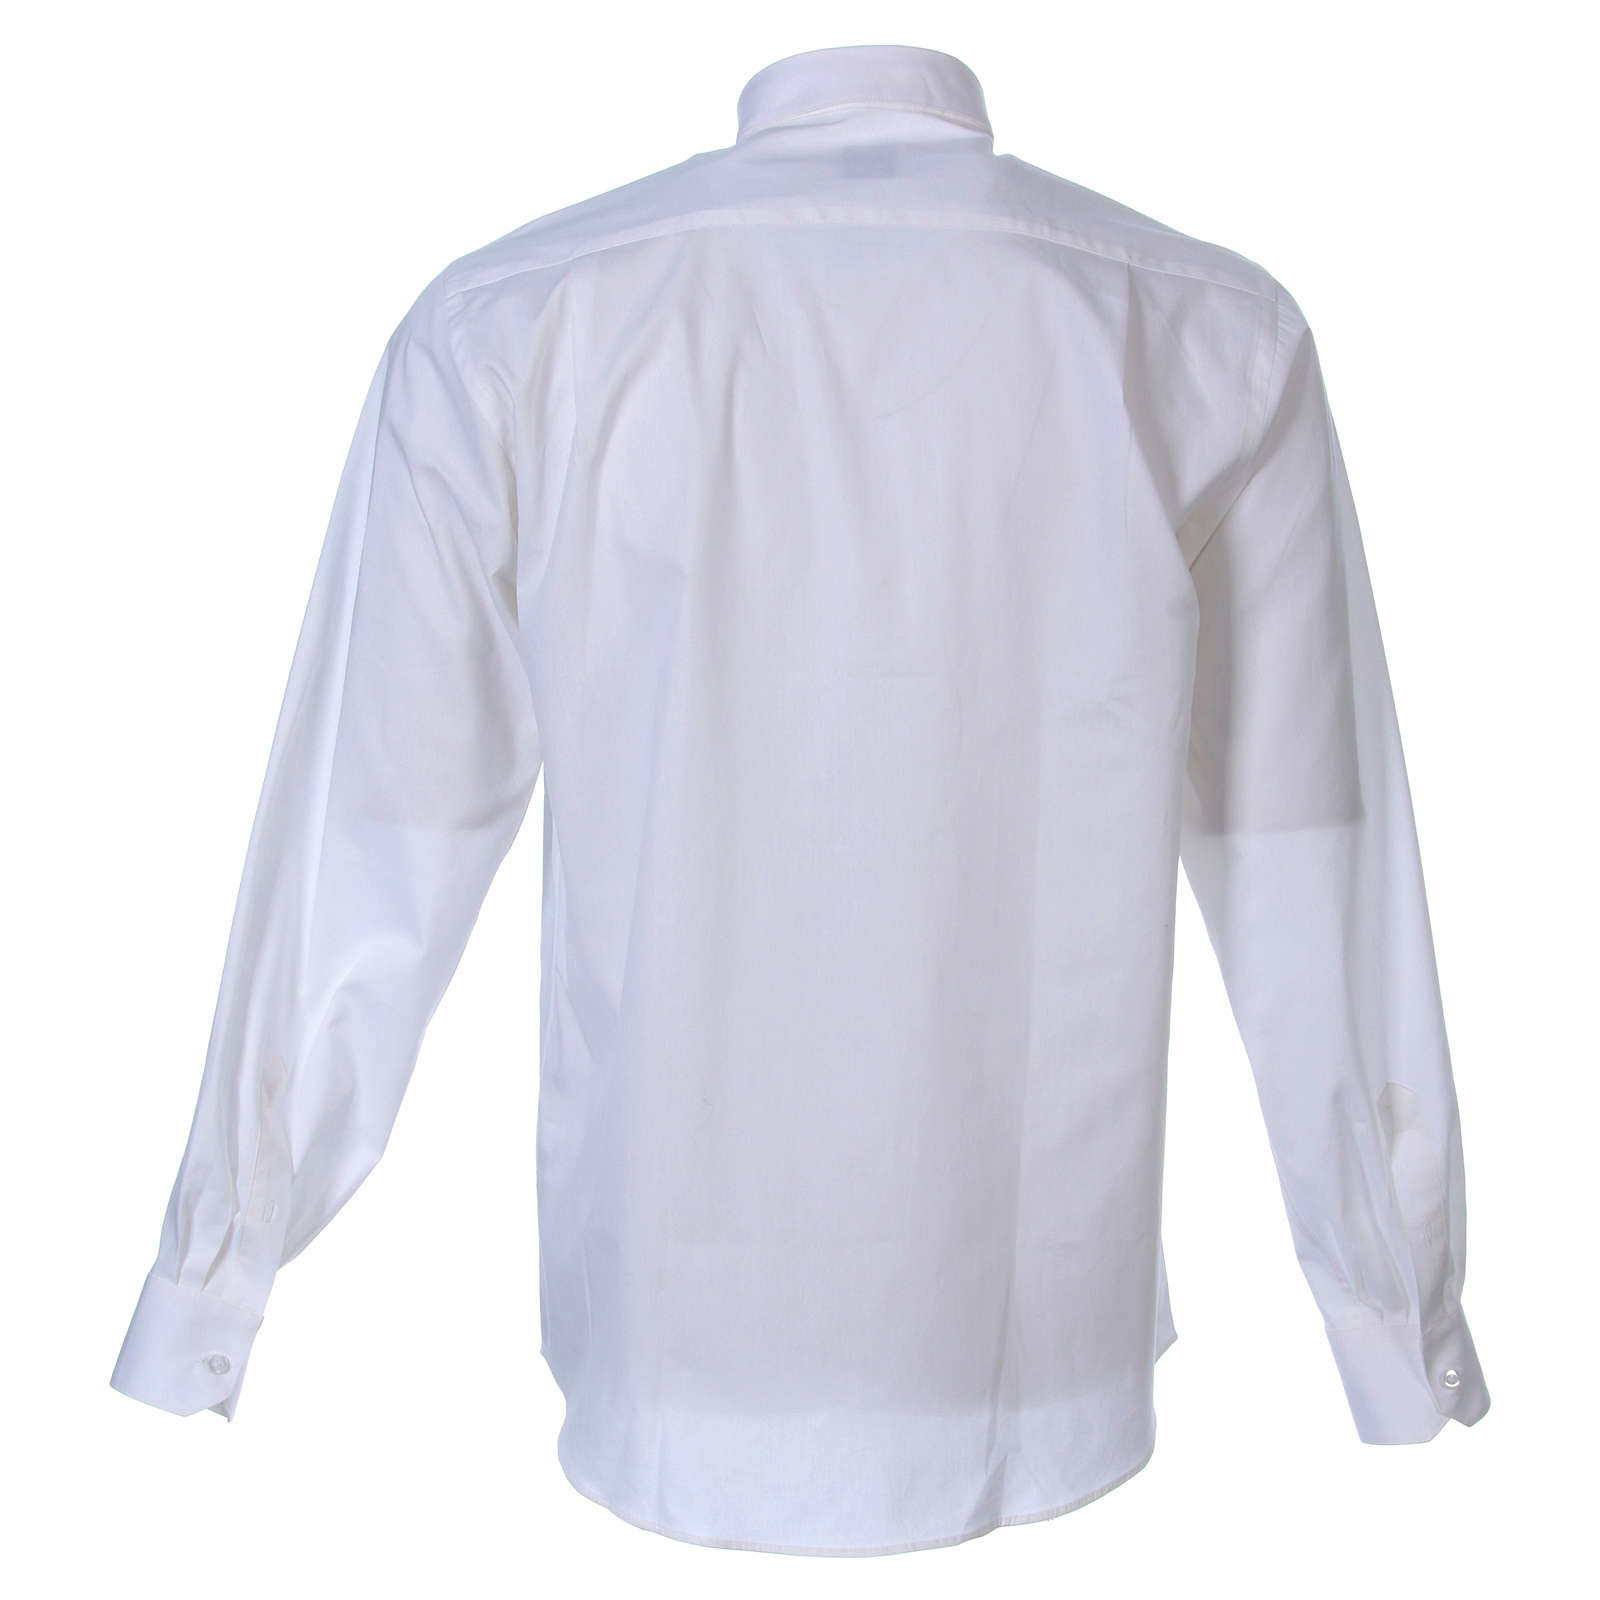 STOCK Clergyman shirt in white popeline cotton, long sleeves 4